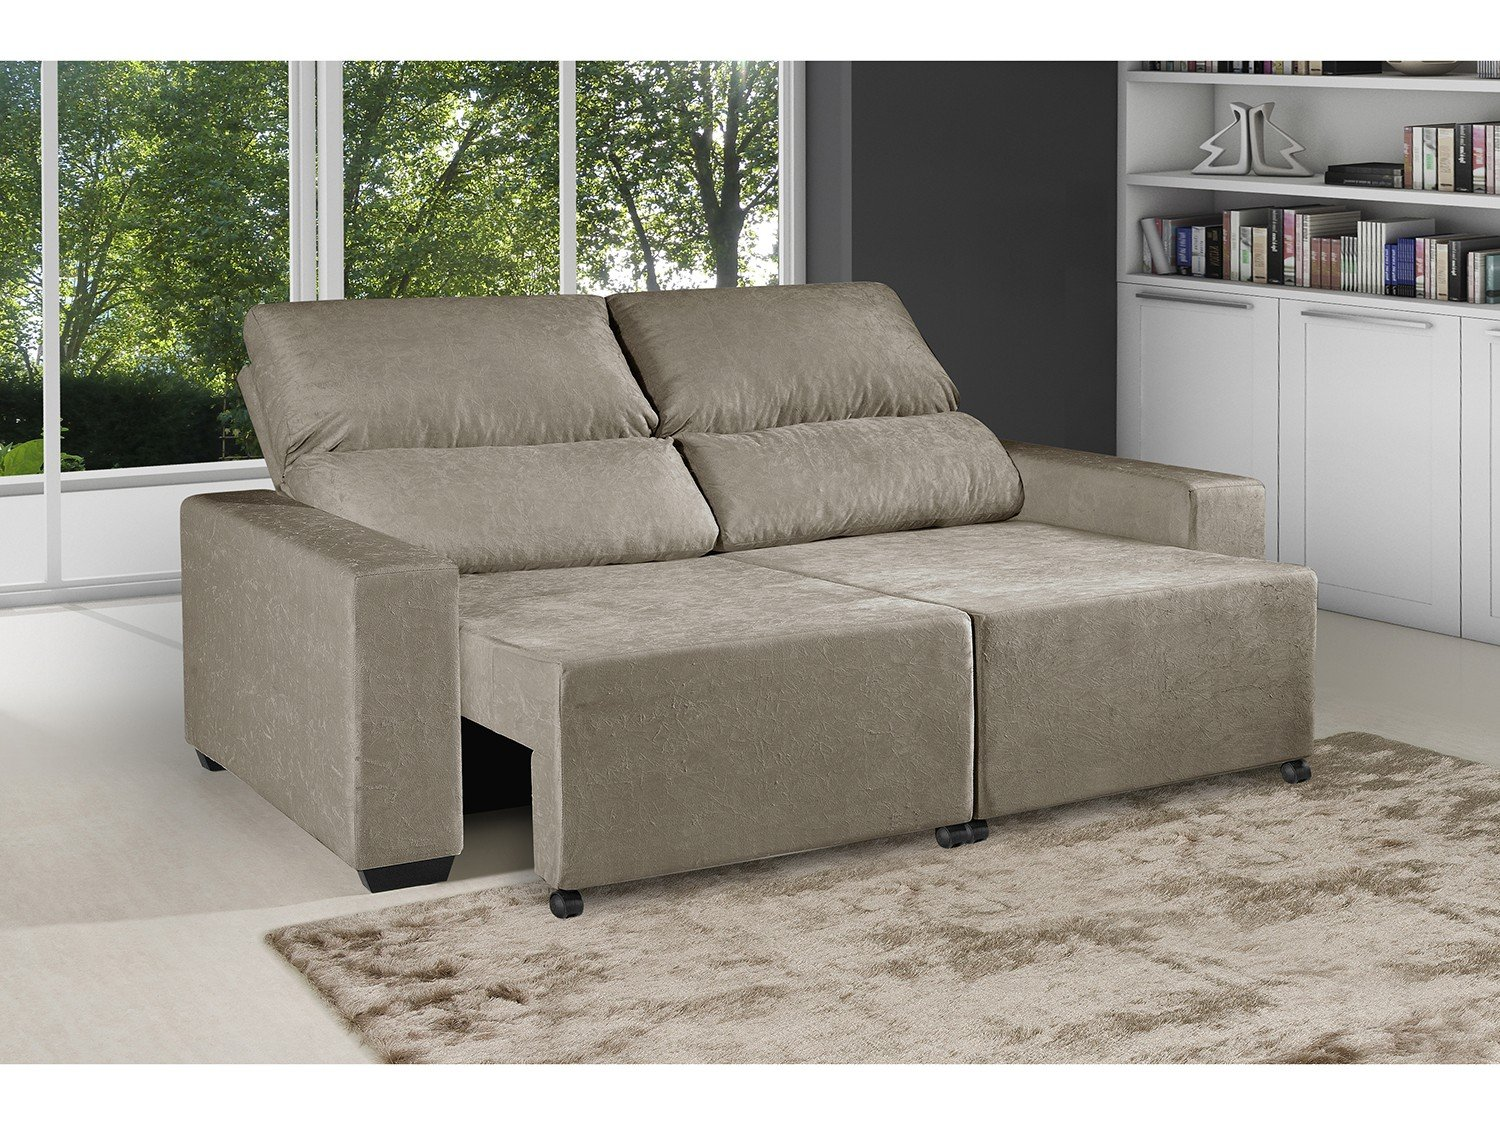 Sofa reclinavel for Sofa 03 lugares